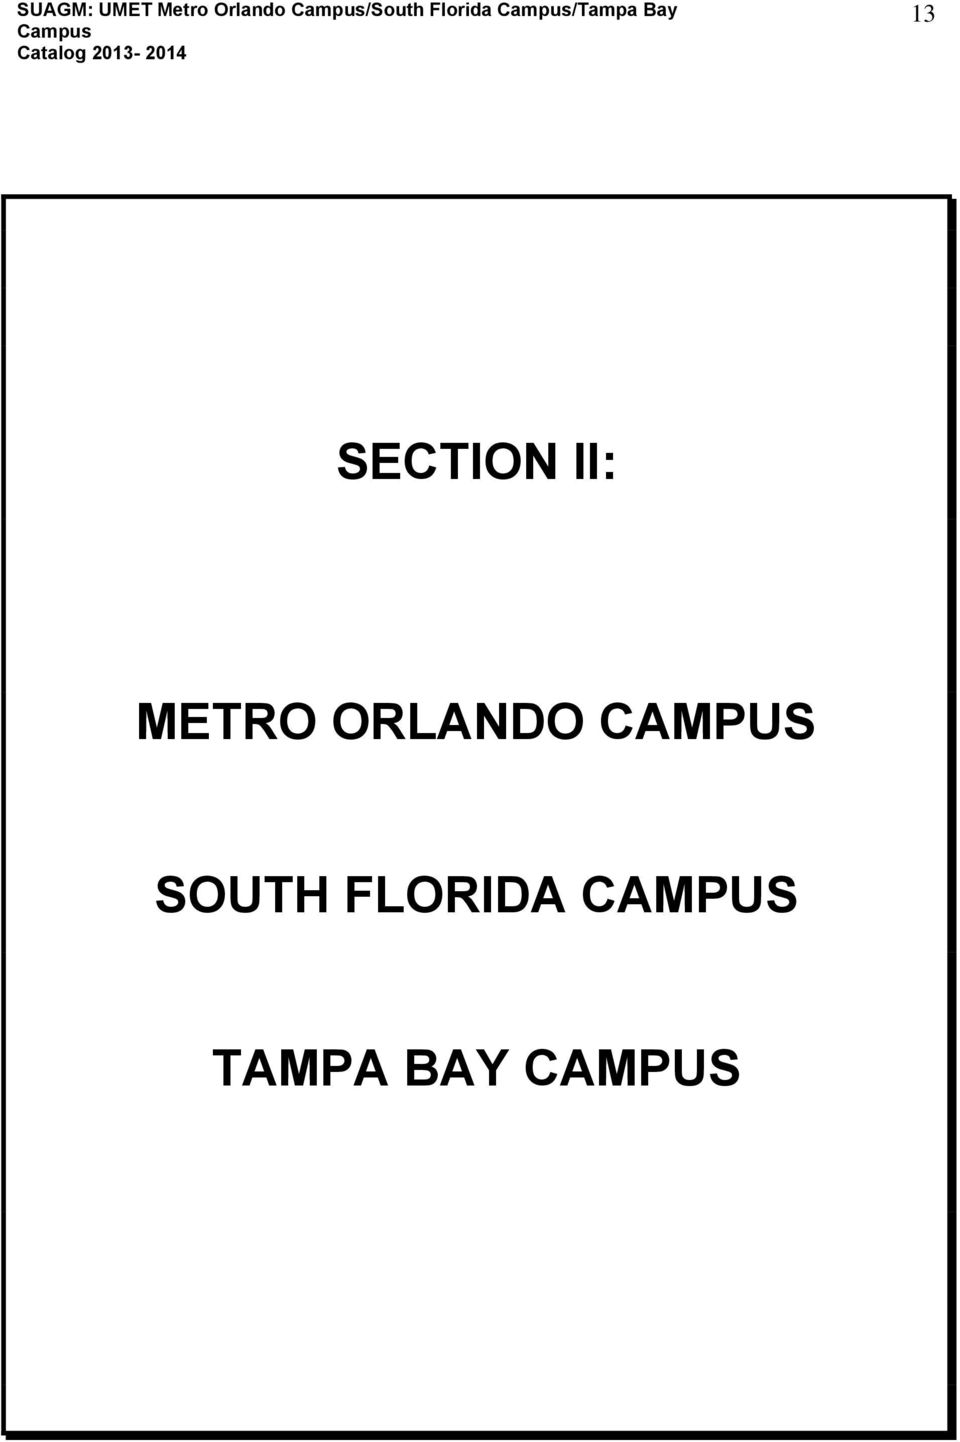 SECTION II: METRO ORLANDO